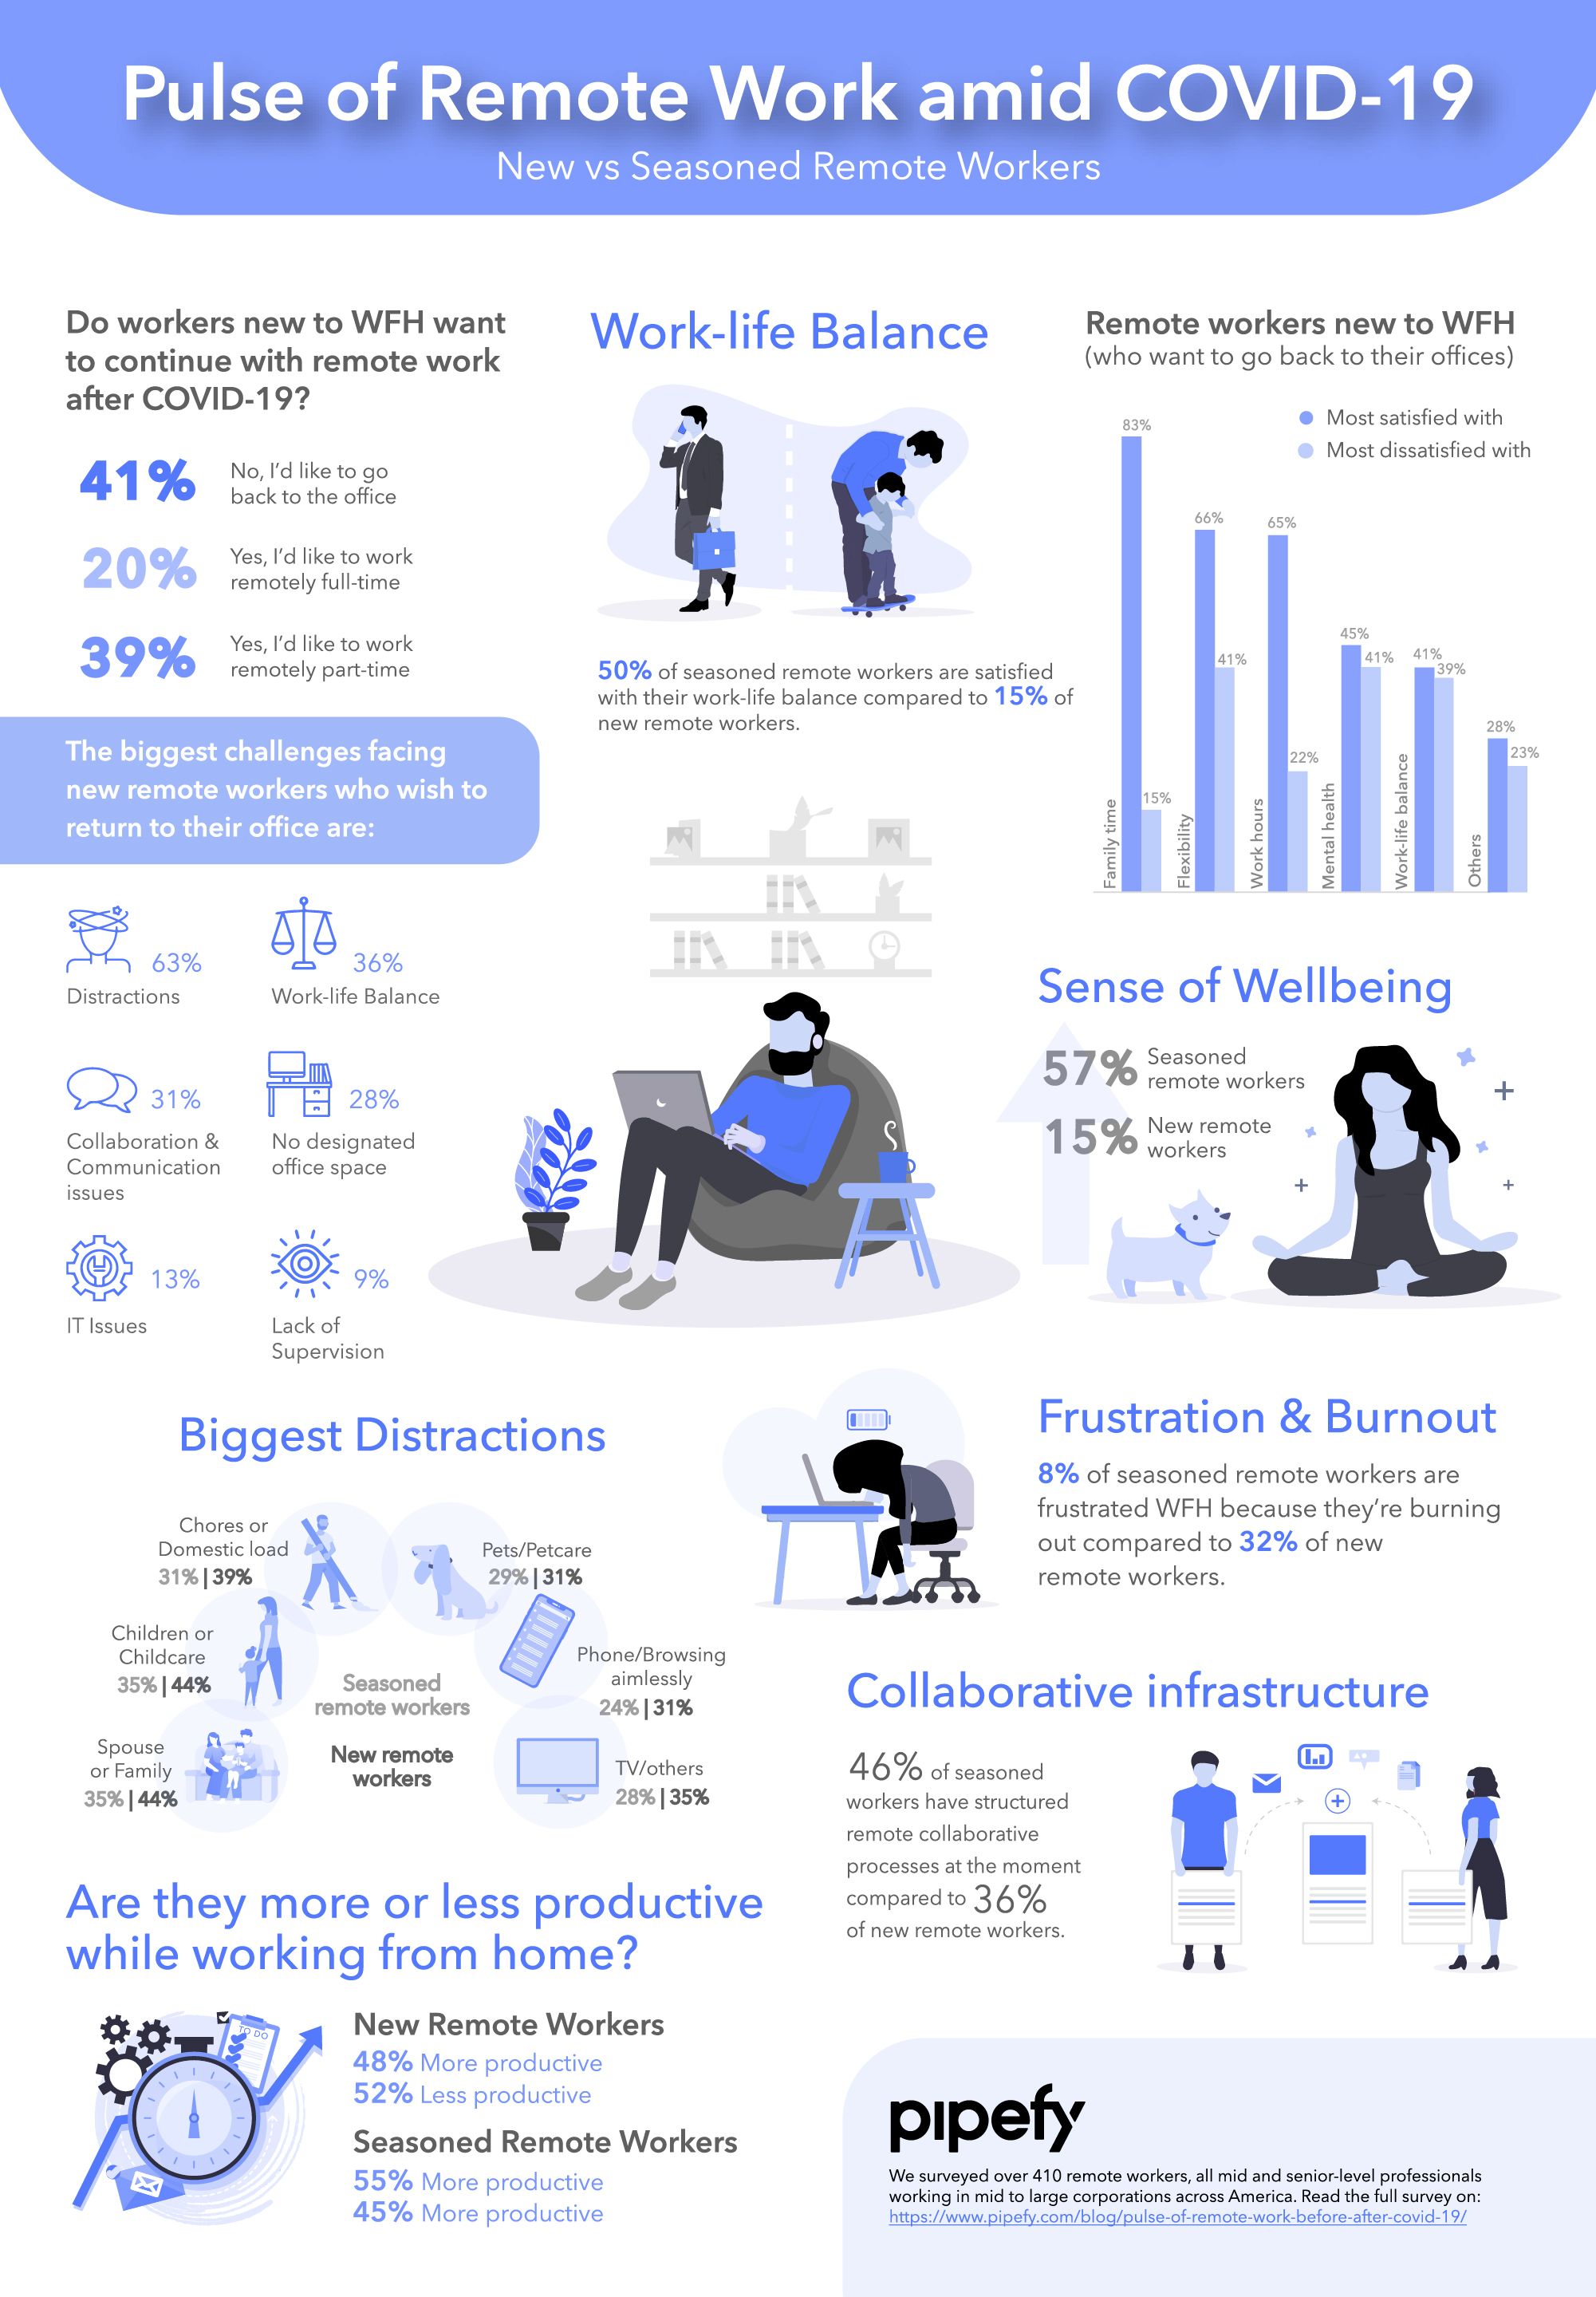 Pipefy Pulse of Remote Work amid COVID-19 infographic